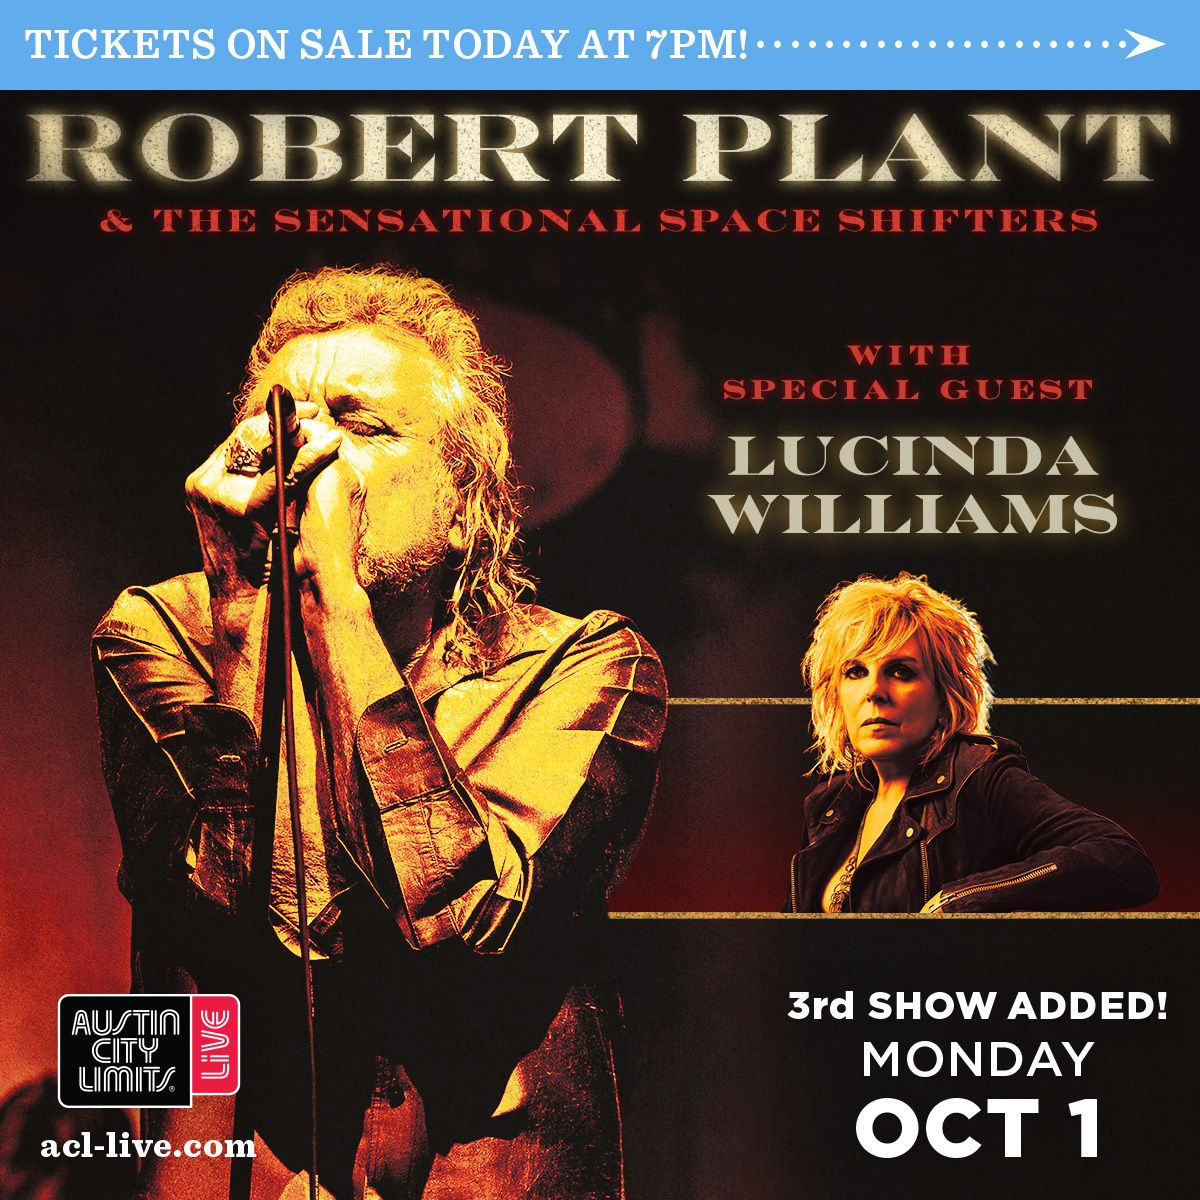 JUST ANNOUNCED 3RD NIGHT: @RobertPlant & the Sensational Space Shifters with special guest Lucinda Williams (@HappyWoman9) on 10/1! Tickets on sale TODAY at 7PM here: acl.live/2NGWKH5